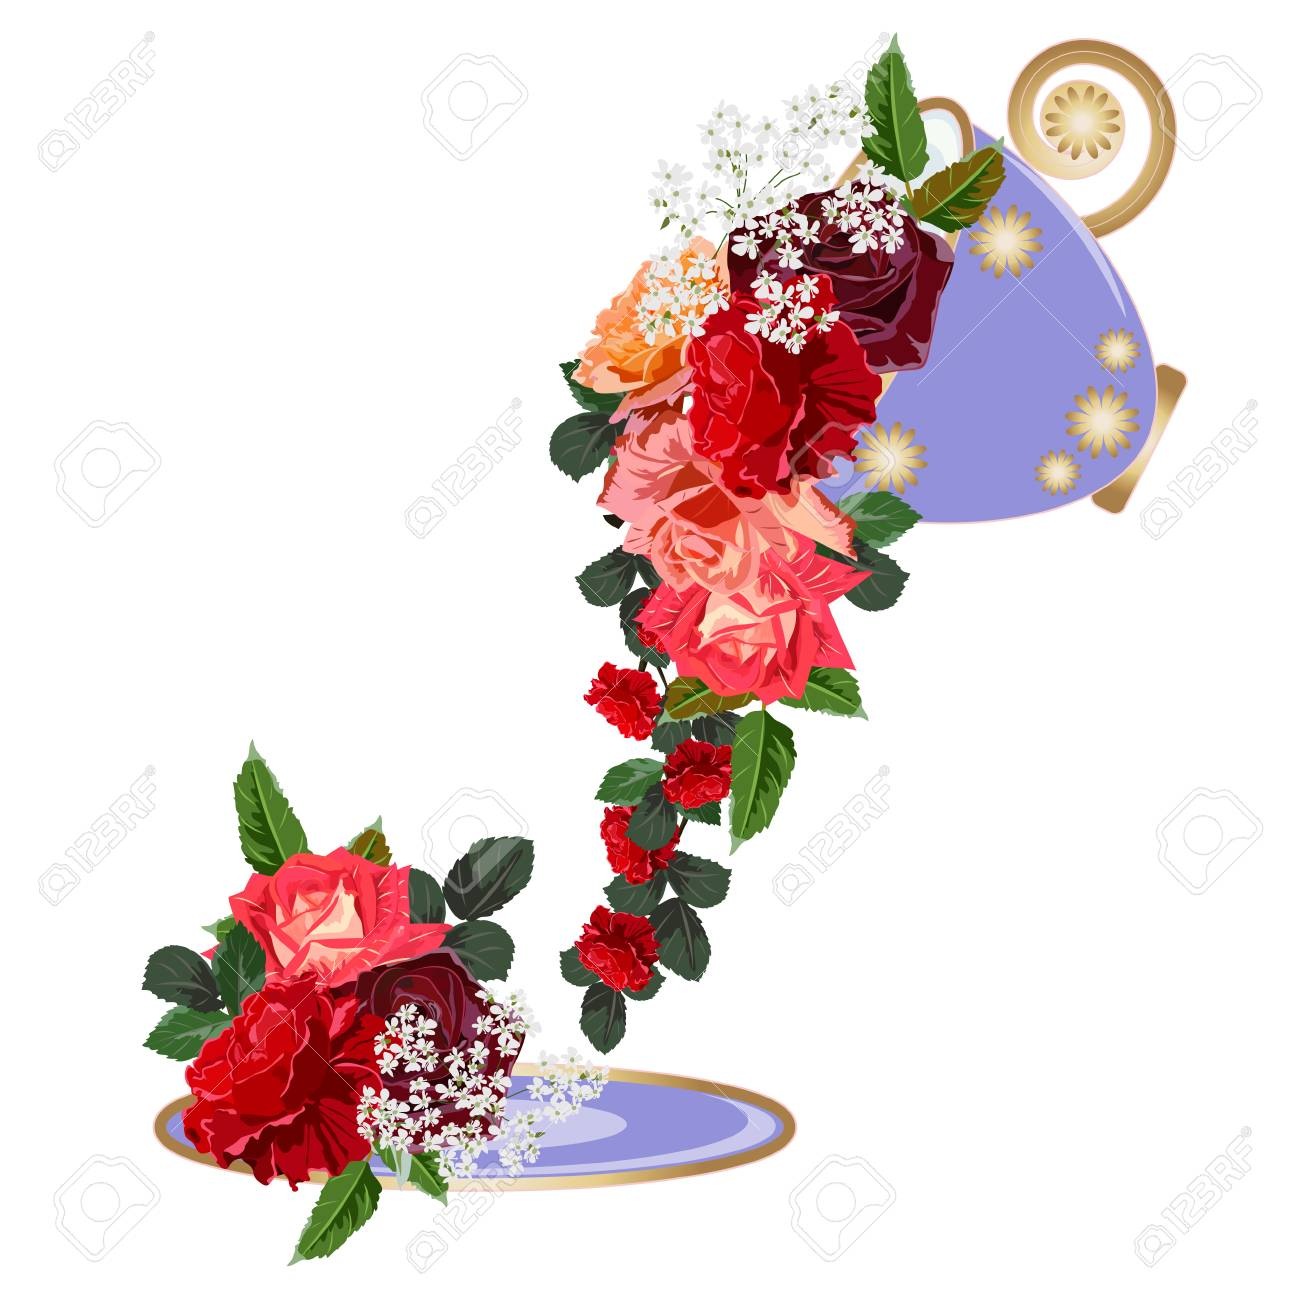 Bouquet Of Red Roses In A Purple Cup. Decor Elements For Greeting ...